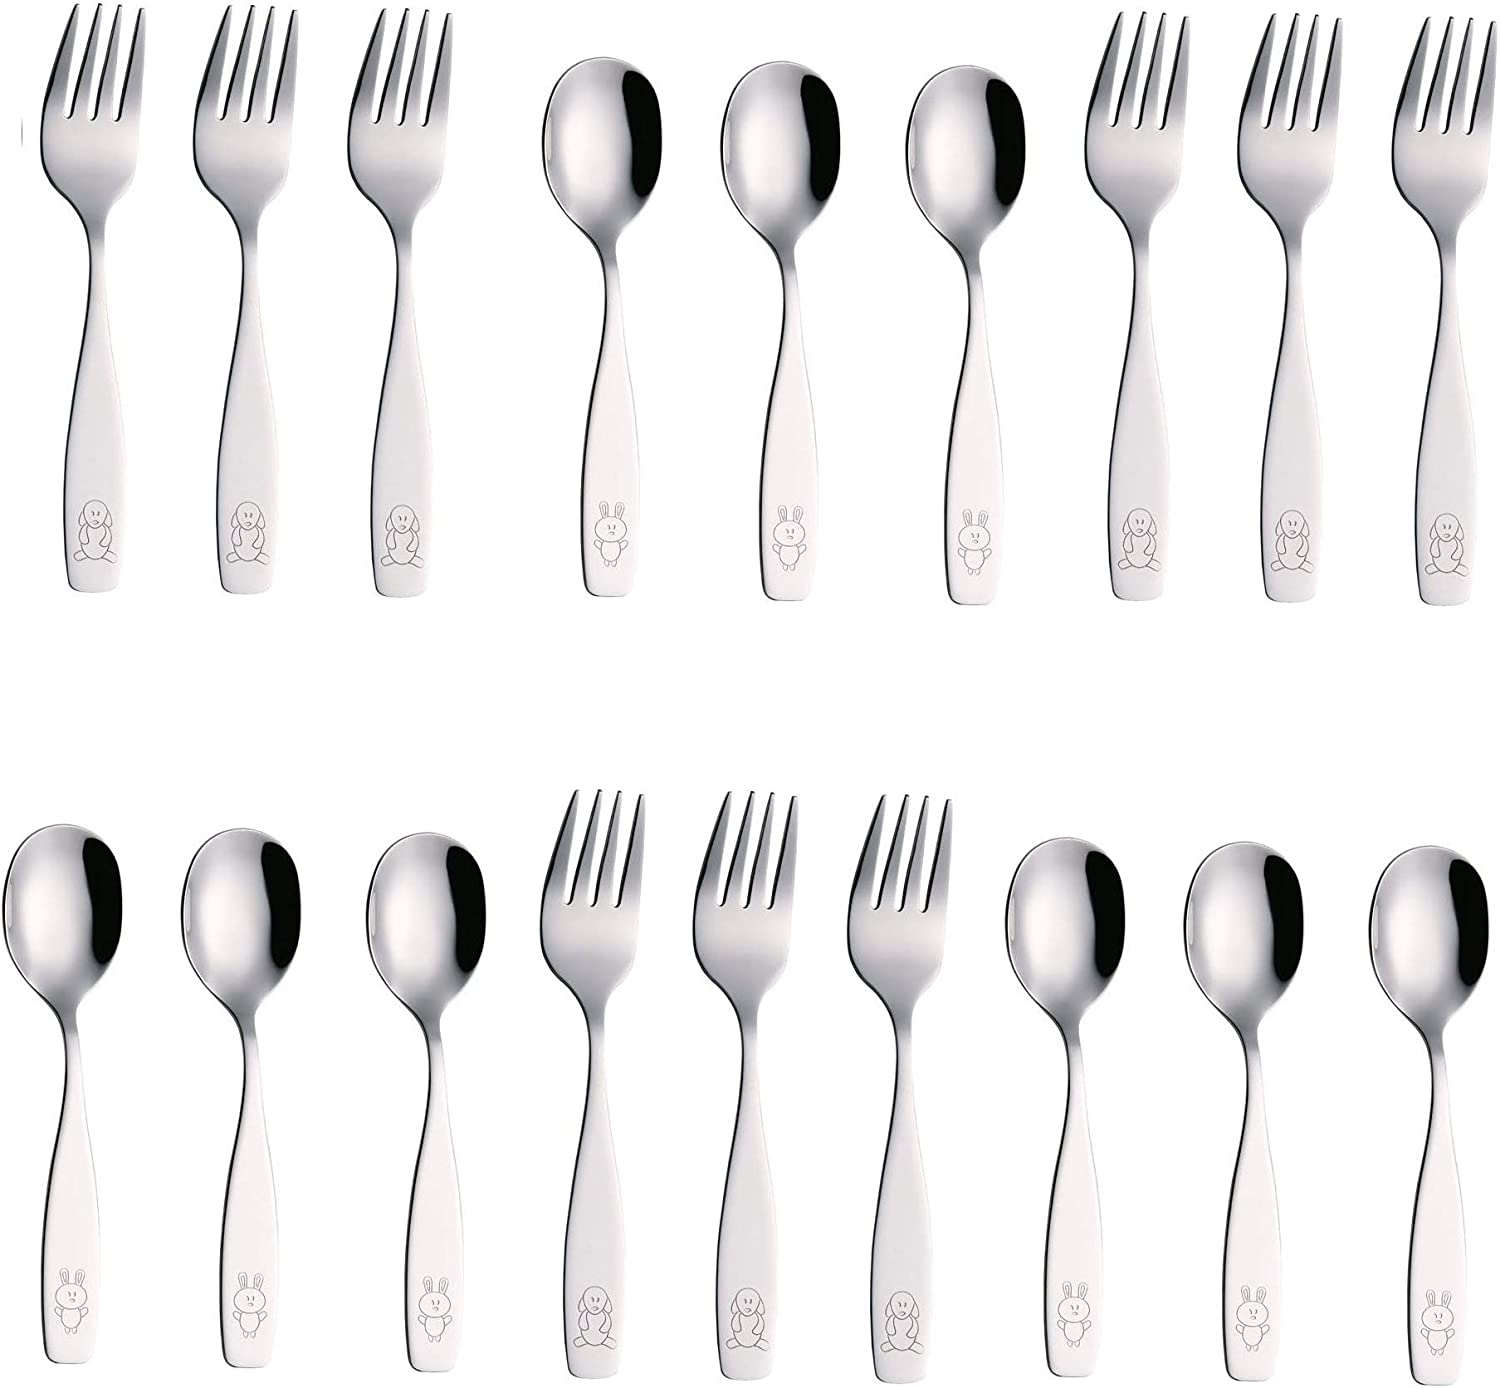 9 x Children Safe Forks Safe Toddler Utensils 9 x Children Tablespoons Exzact Stainless Steel 18 Pieces Childrens Flatware//Kids Silverware//Cutlery Set Engraved Dog Bunny